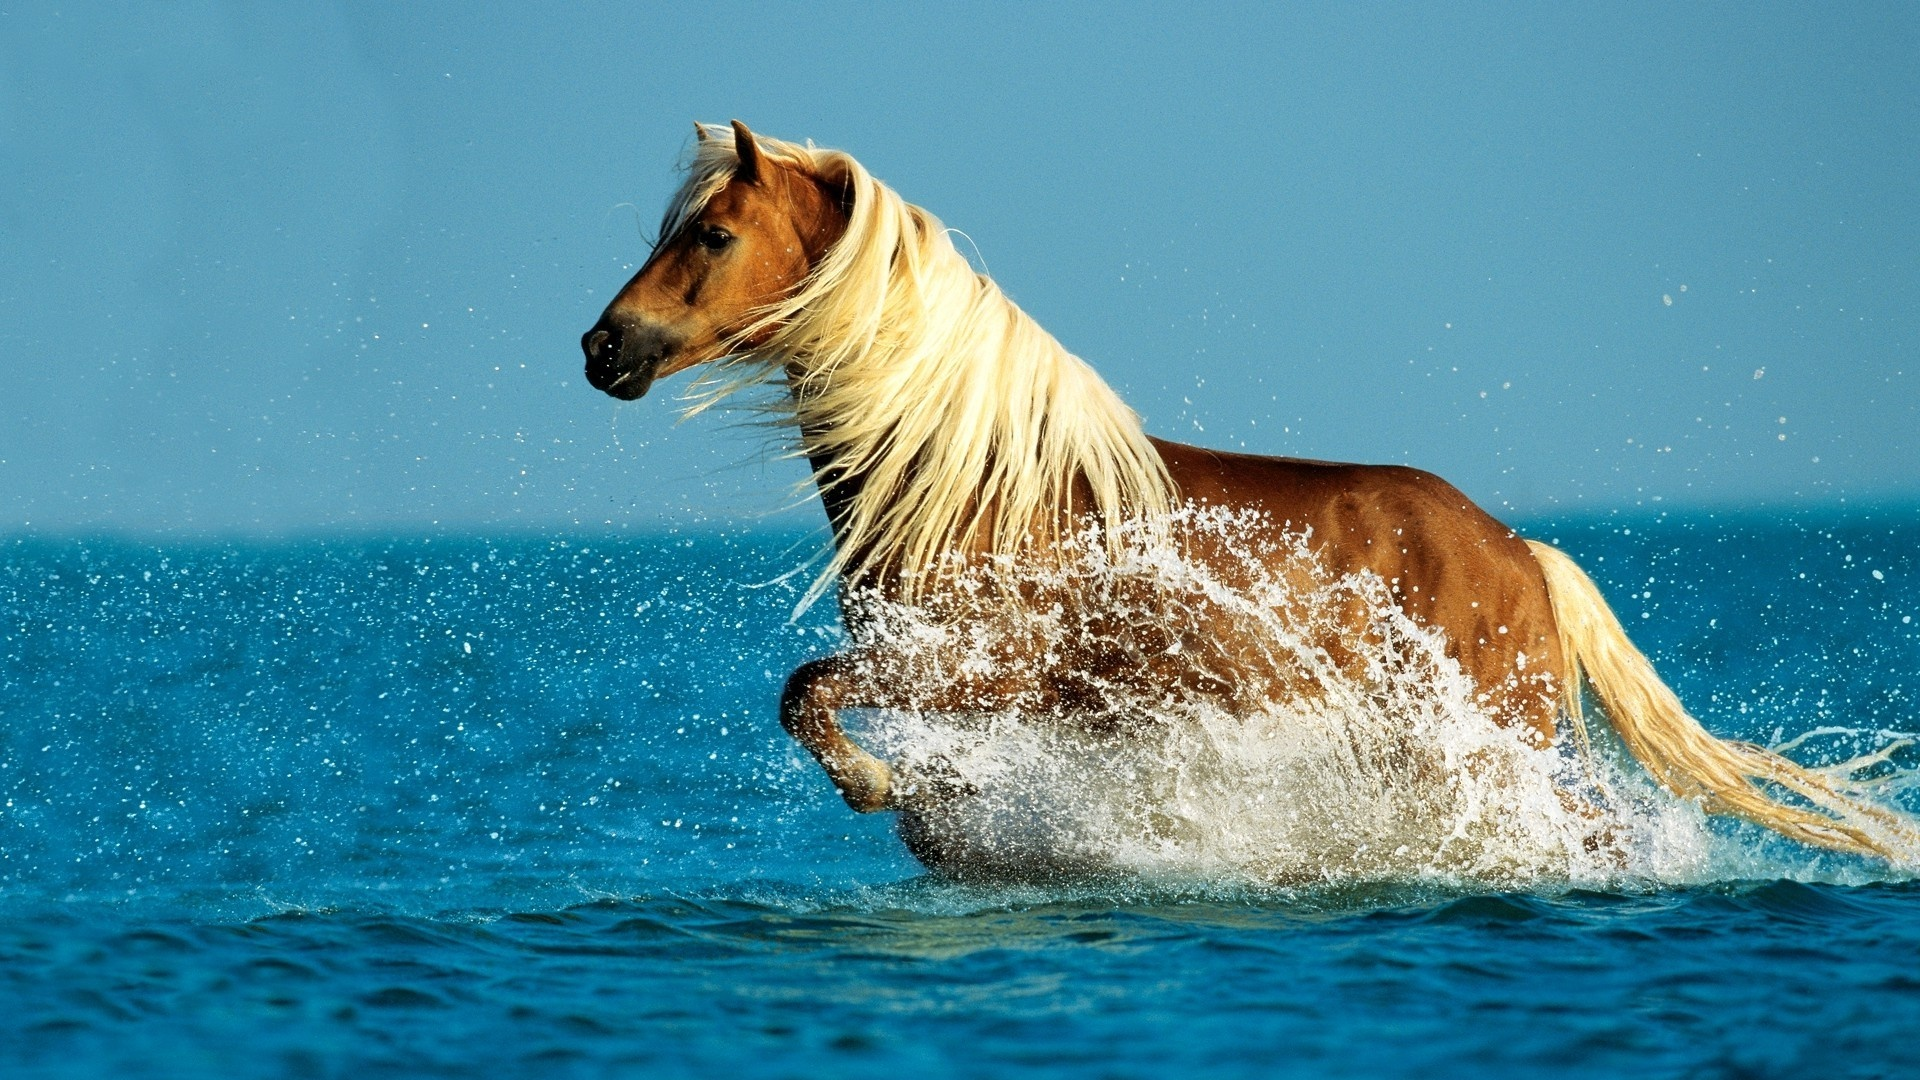 Wallpaper Horse running water 1920x1200 HD Picture, Image - photo#15